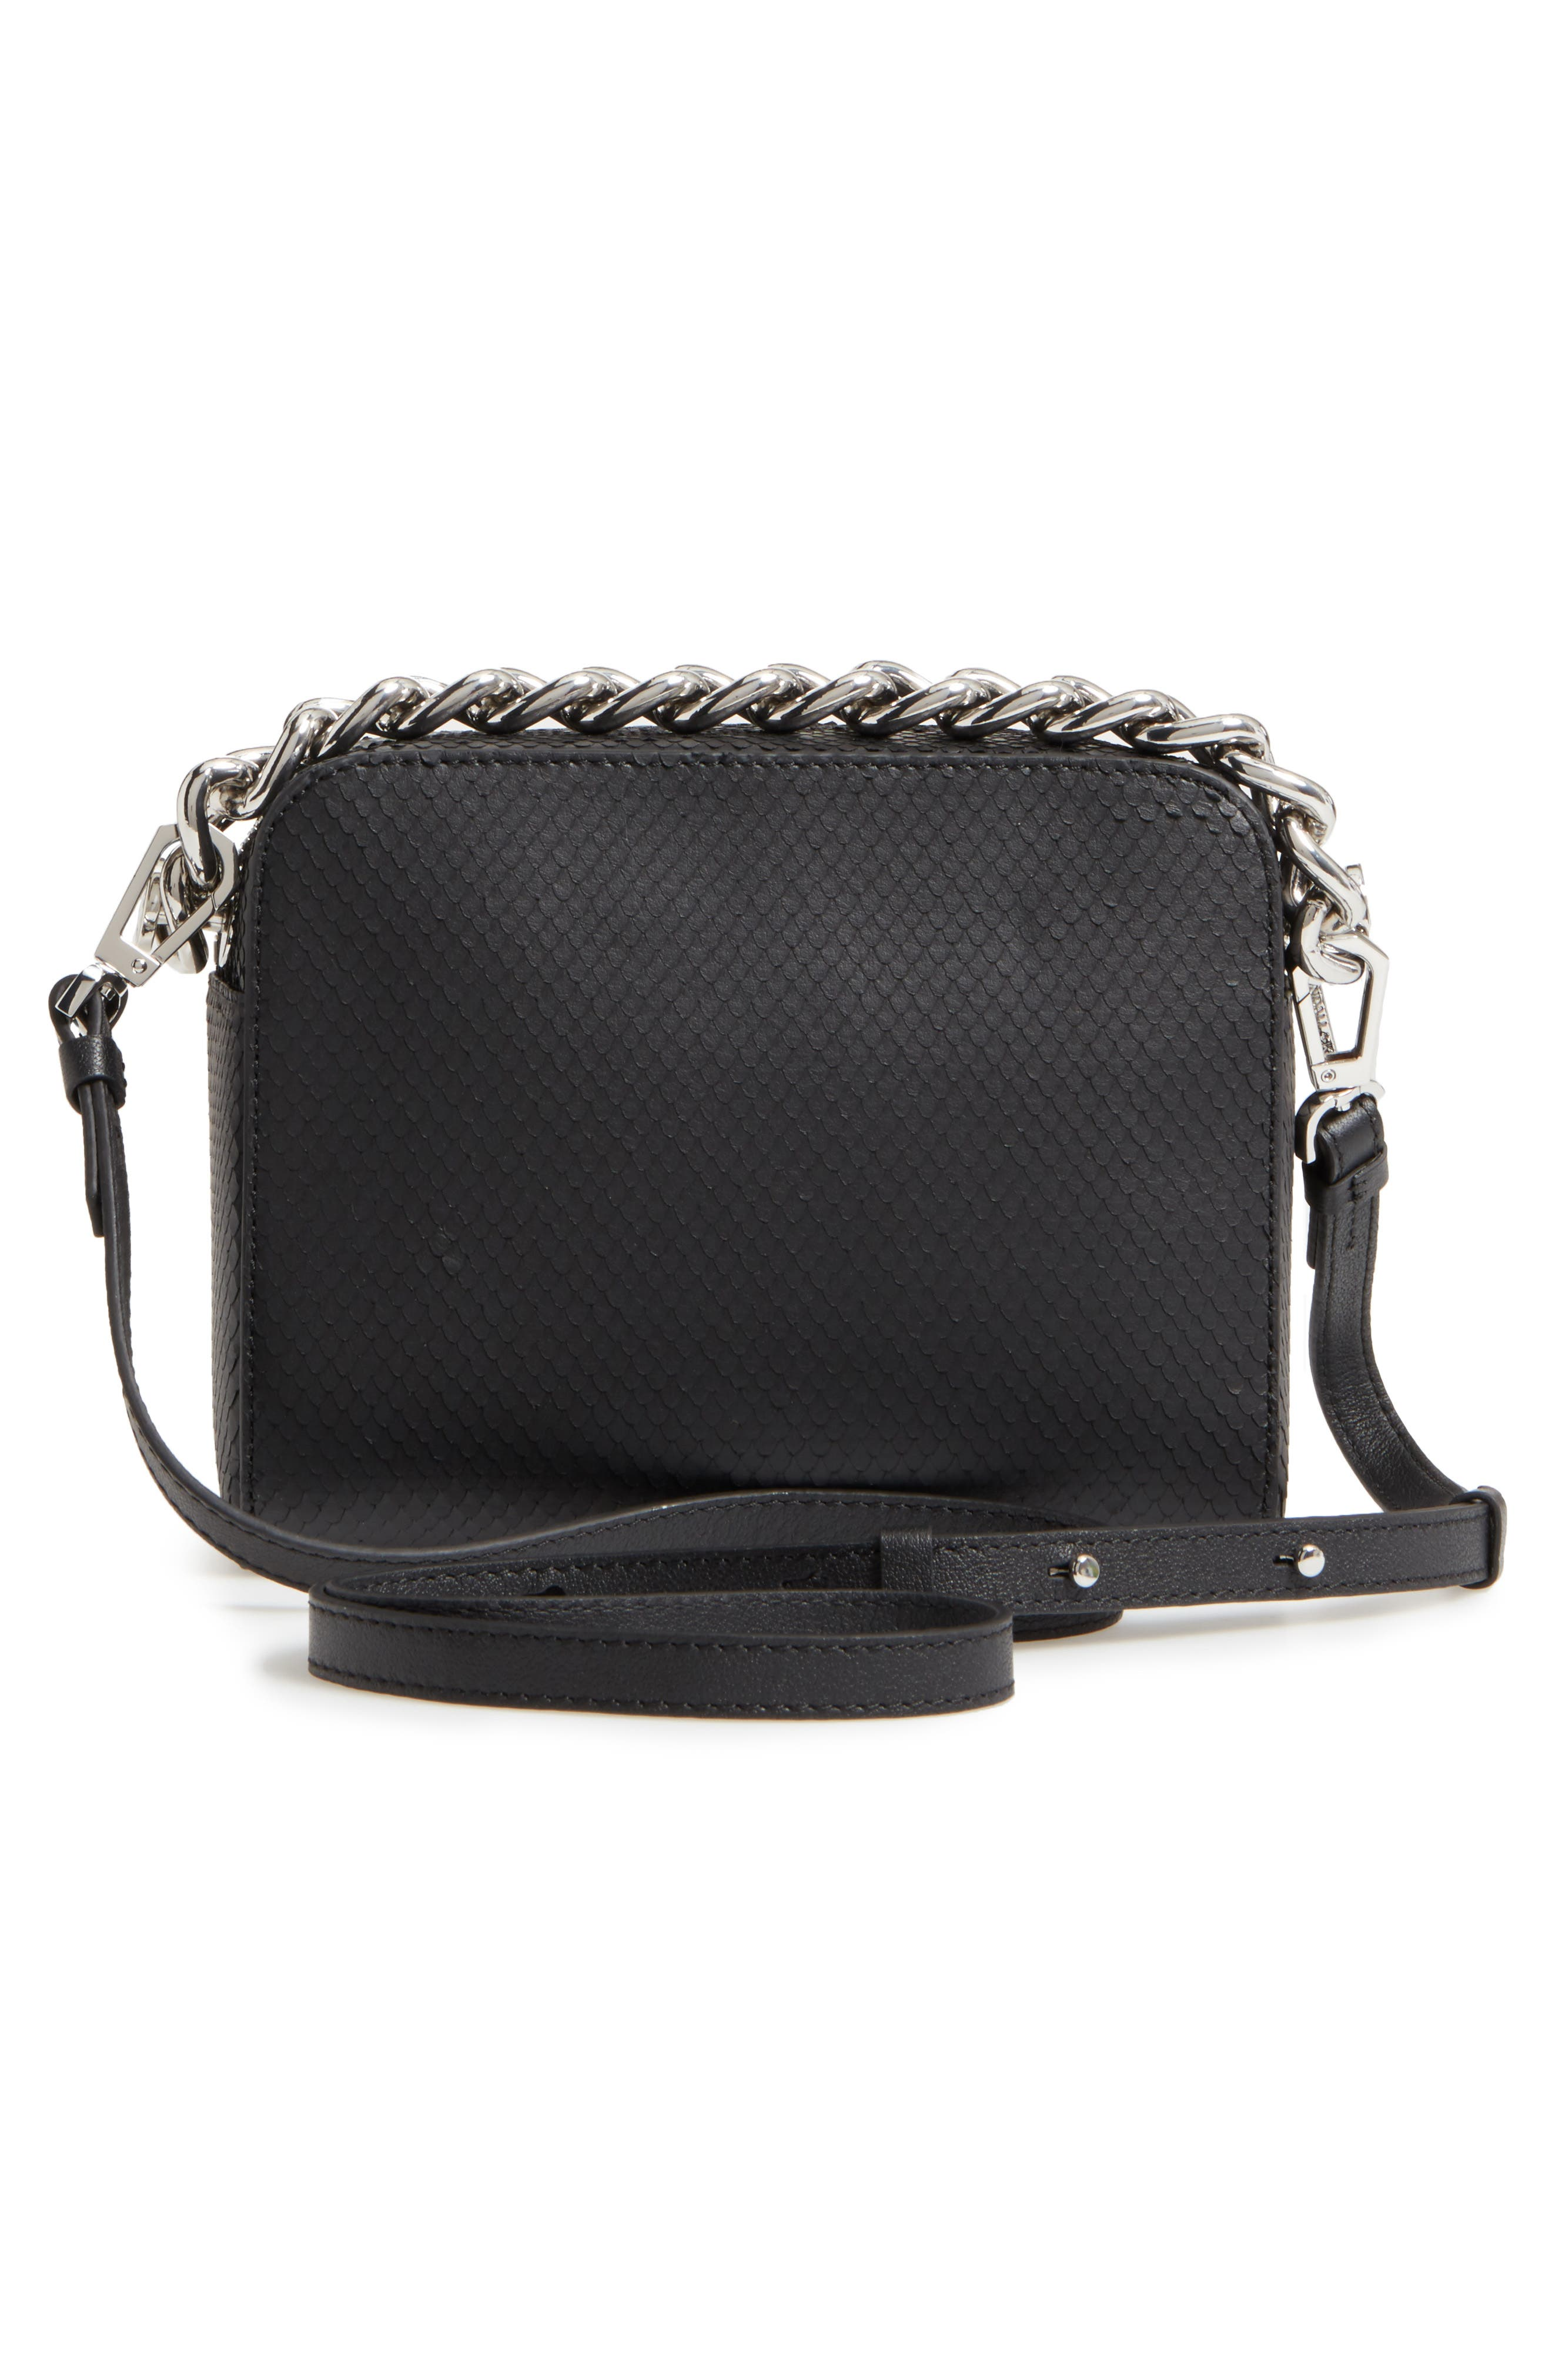 Lucy Leather Crossbody Bag,                             Alternate thumbnail 3, color,                             001